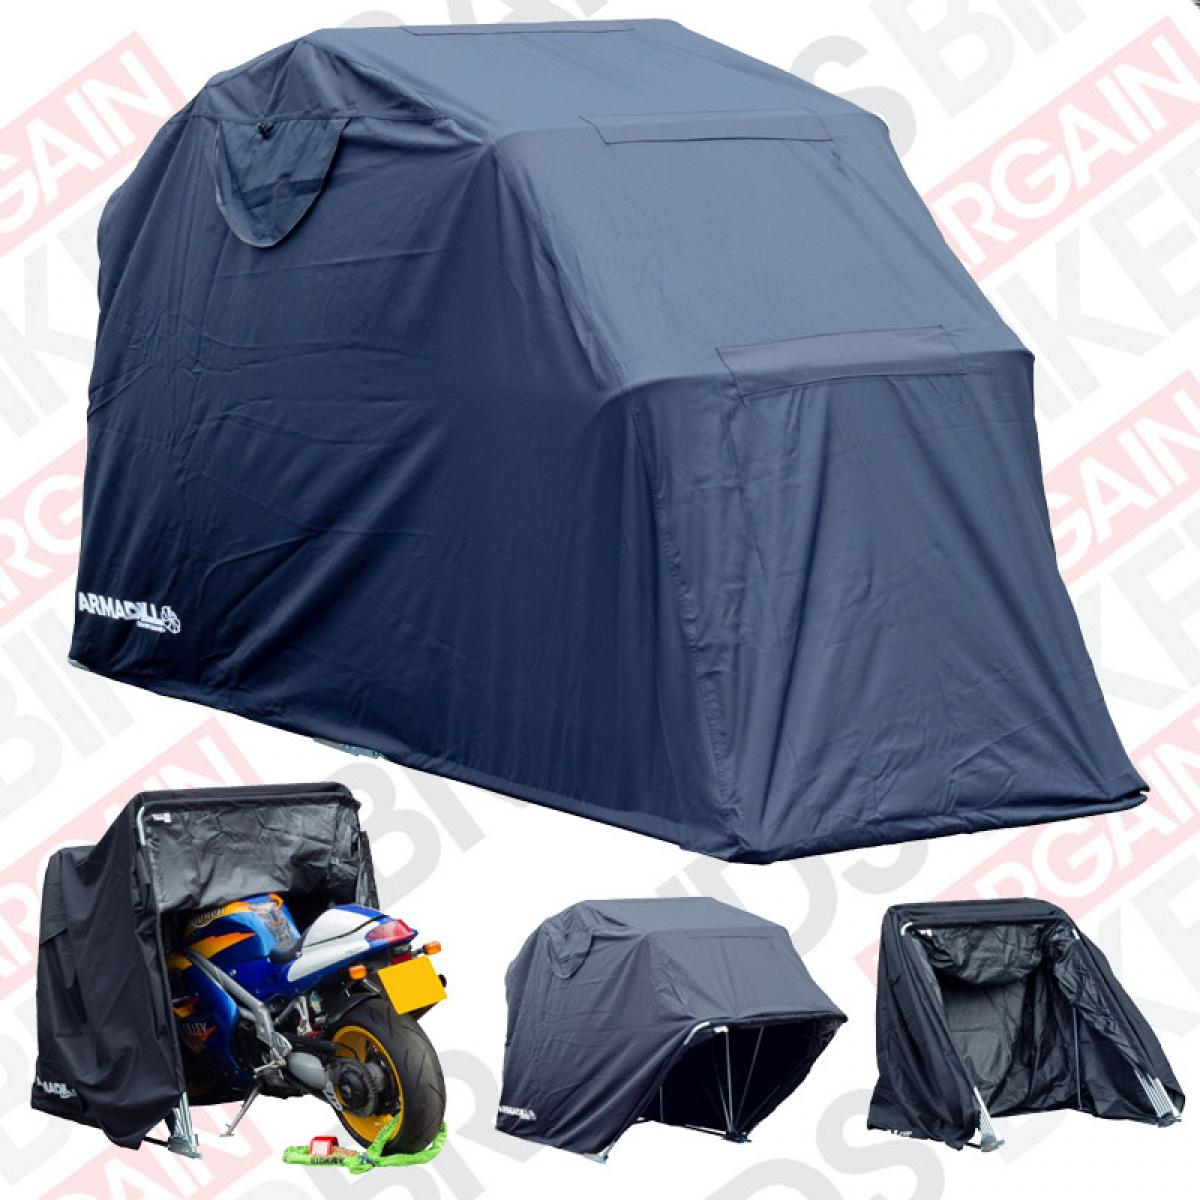 Armadillo motorcycle scooter folding design garage waterproof shelter medium ebay - Motorcycle foldable garage tent cover ...